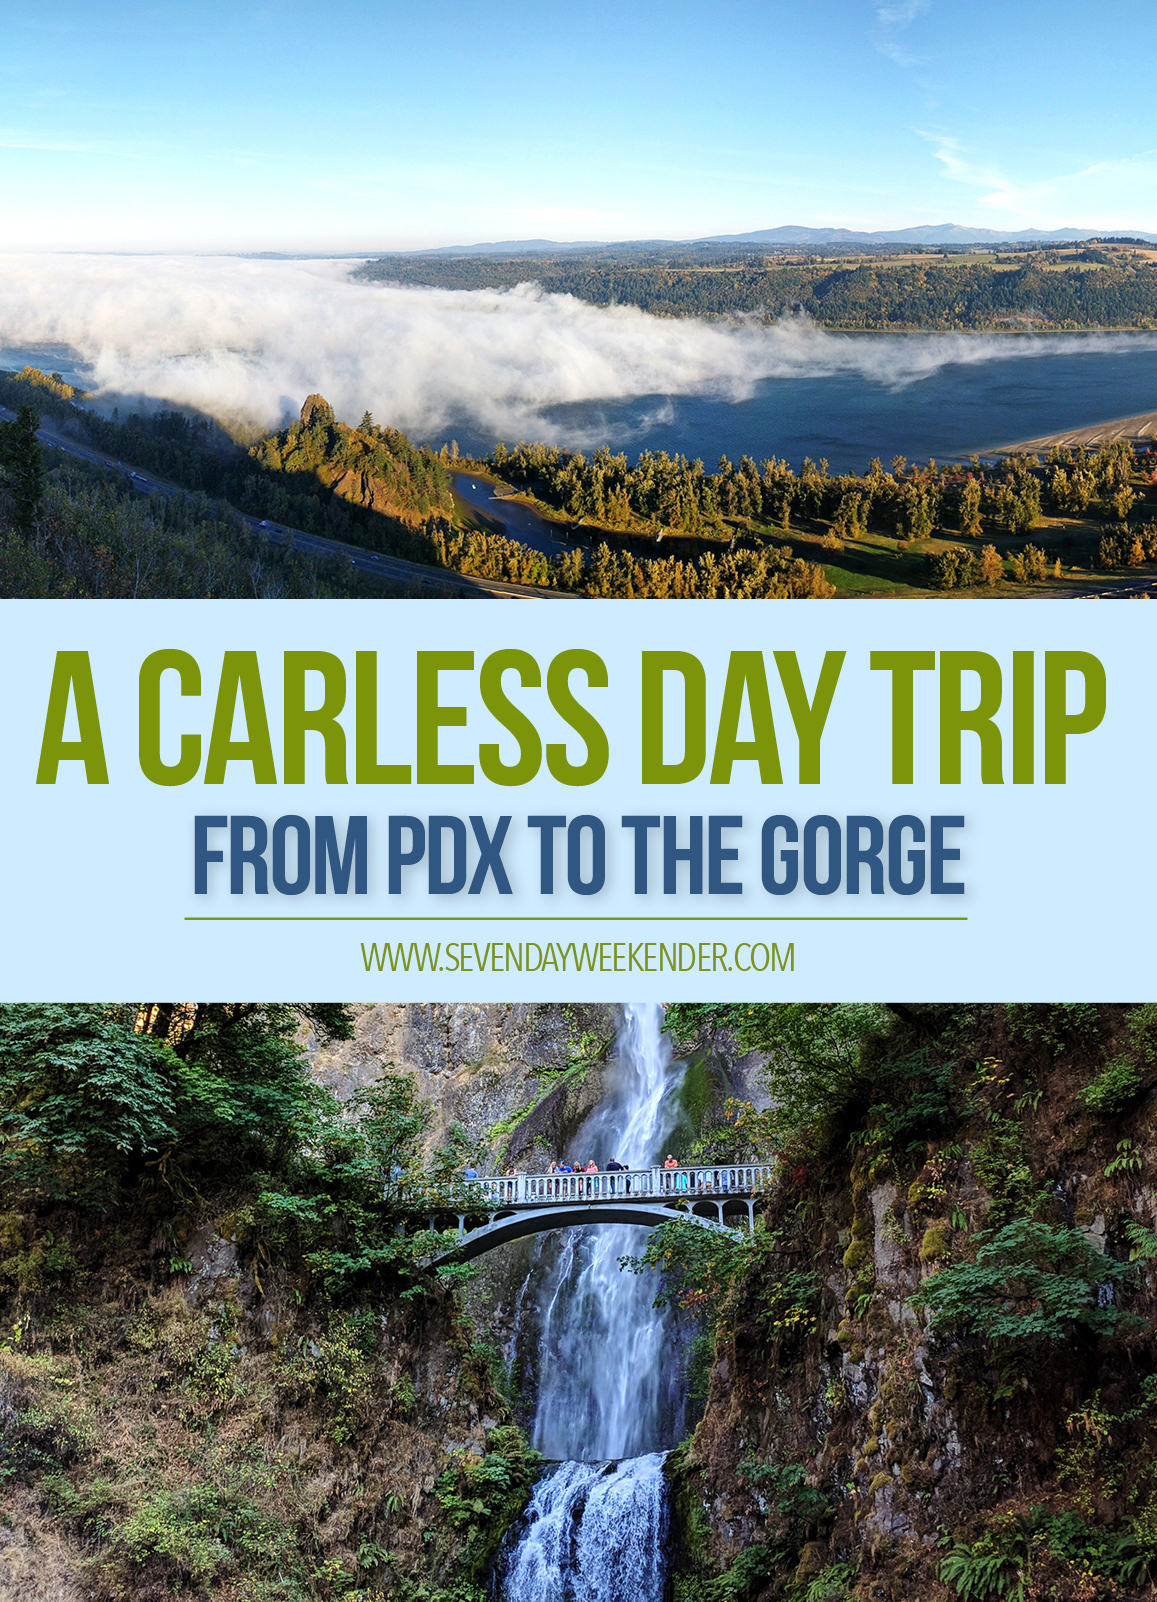 Columbia River Gorge Carless Day Trip